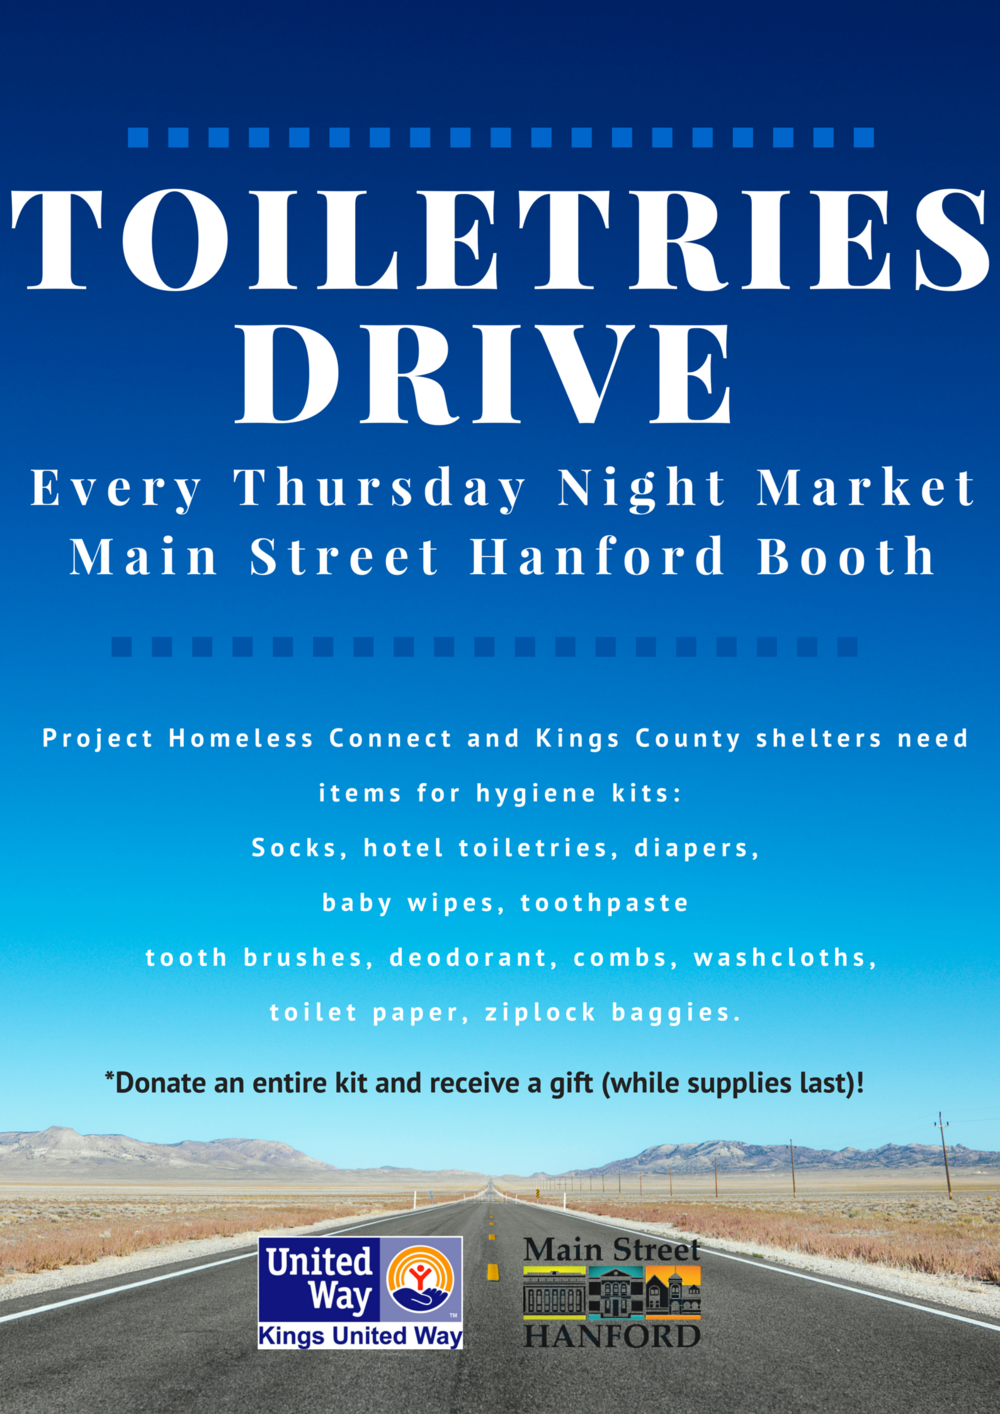 Visit the Main Street Hanford Booth  to drop off items or for more information!